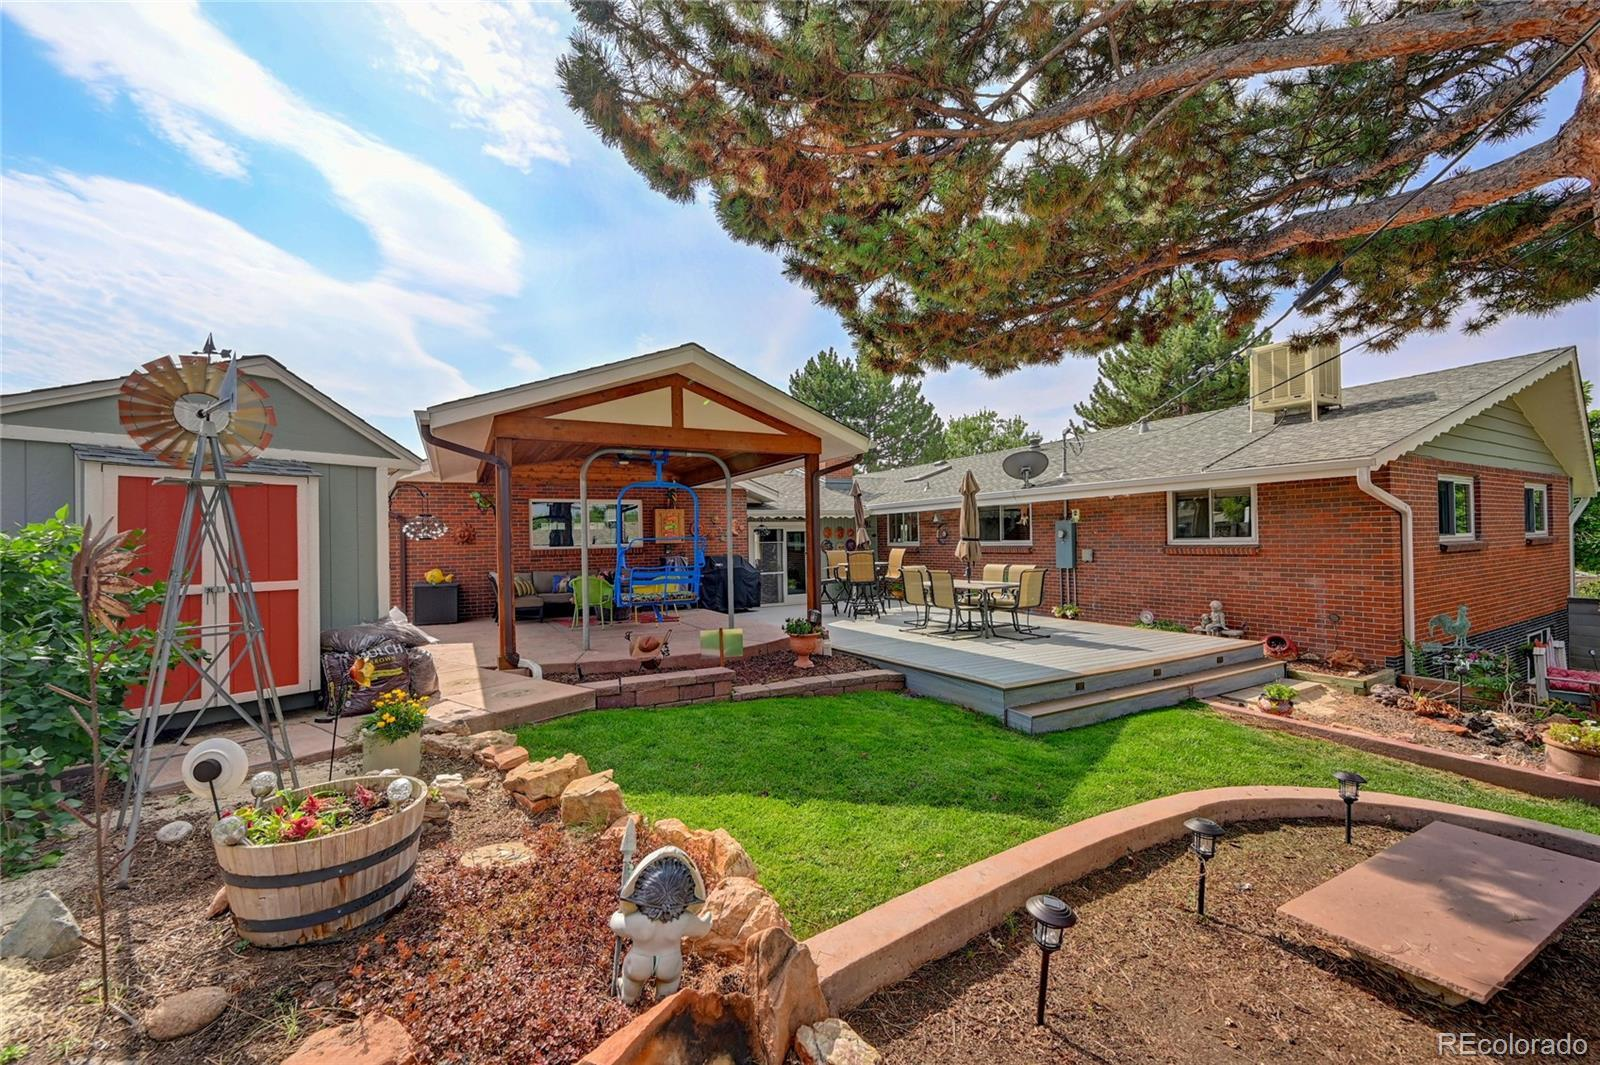 10305 W 18th Place, Lakewood, CO 80215 - #: 7920492